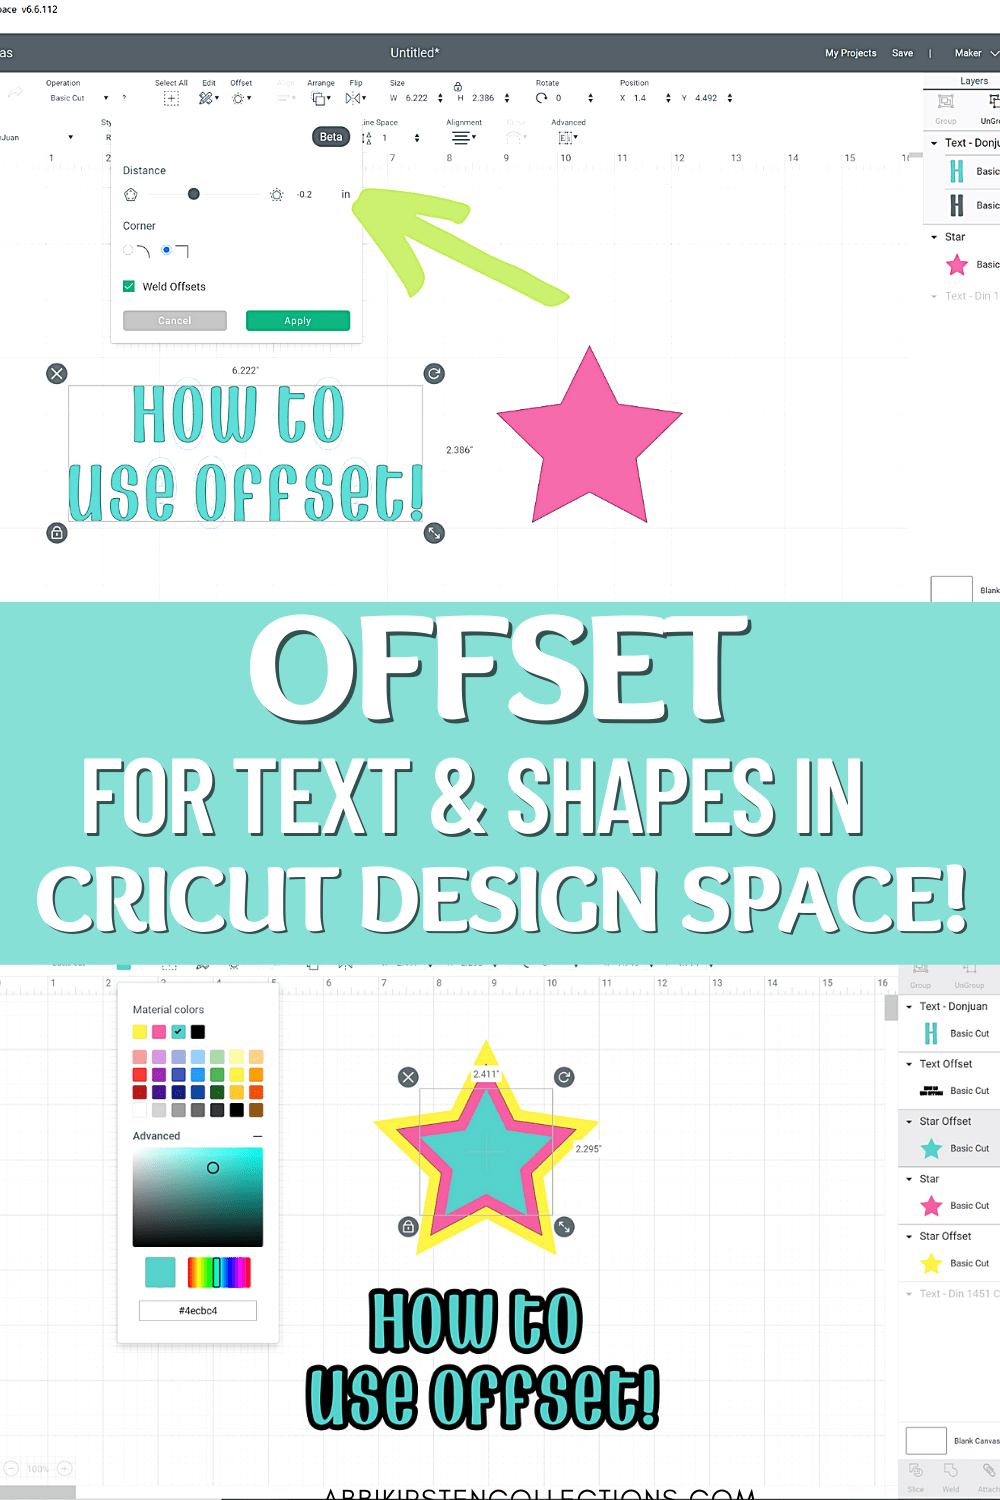 How to Use Offset in Cricut Design Space to Create Layers and Shadows!